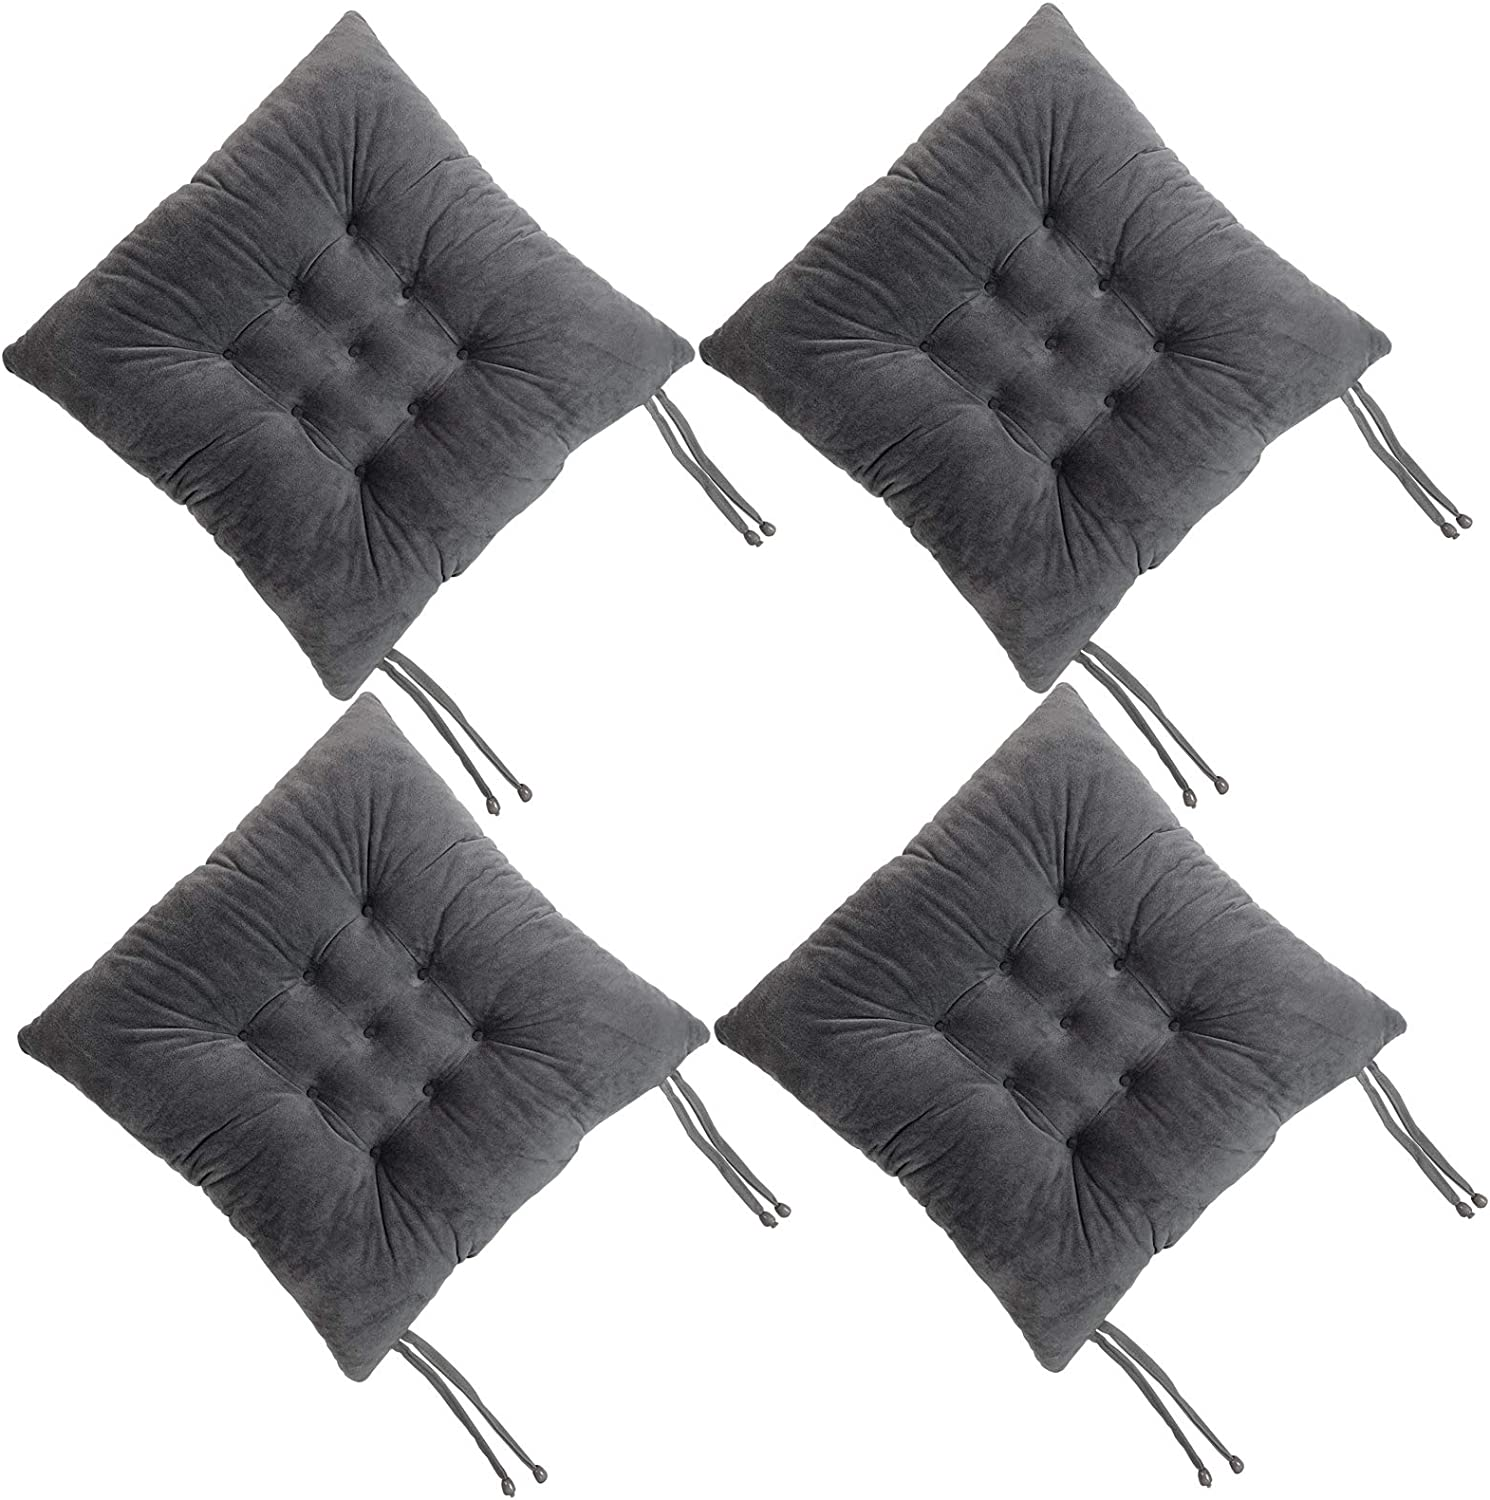 Soft Sofa Pad Chair Cushion Tie on Seat Dining Room Kitchen Office Bedroom Decor